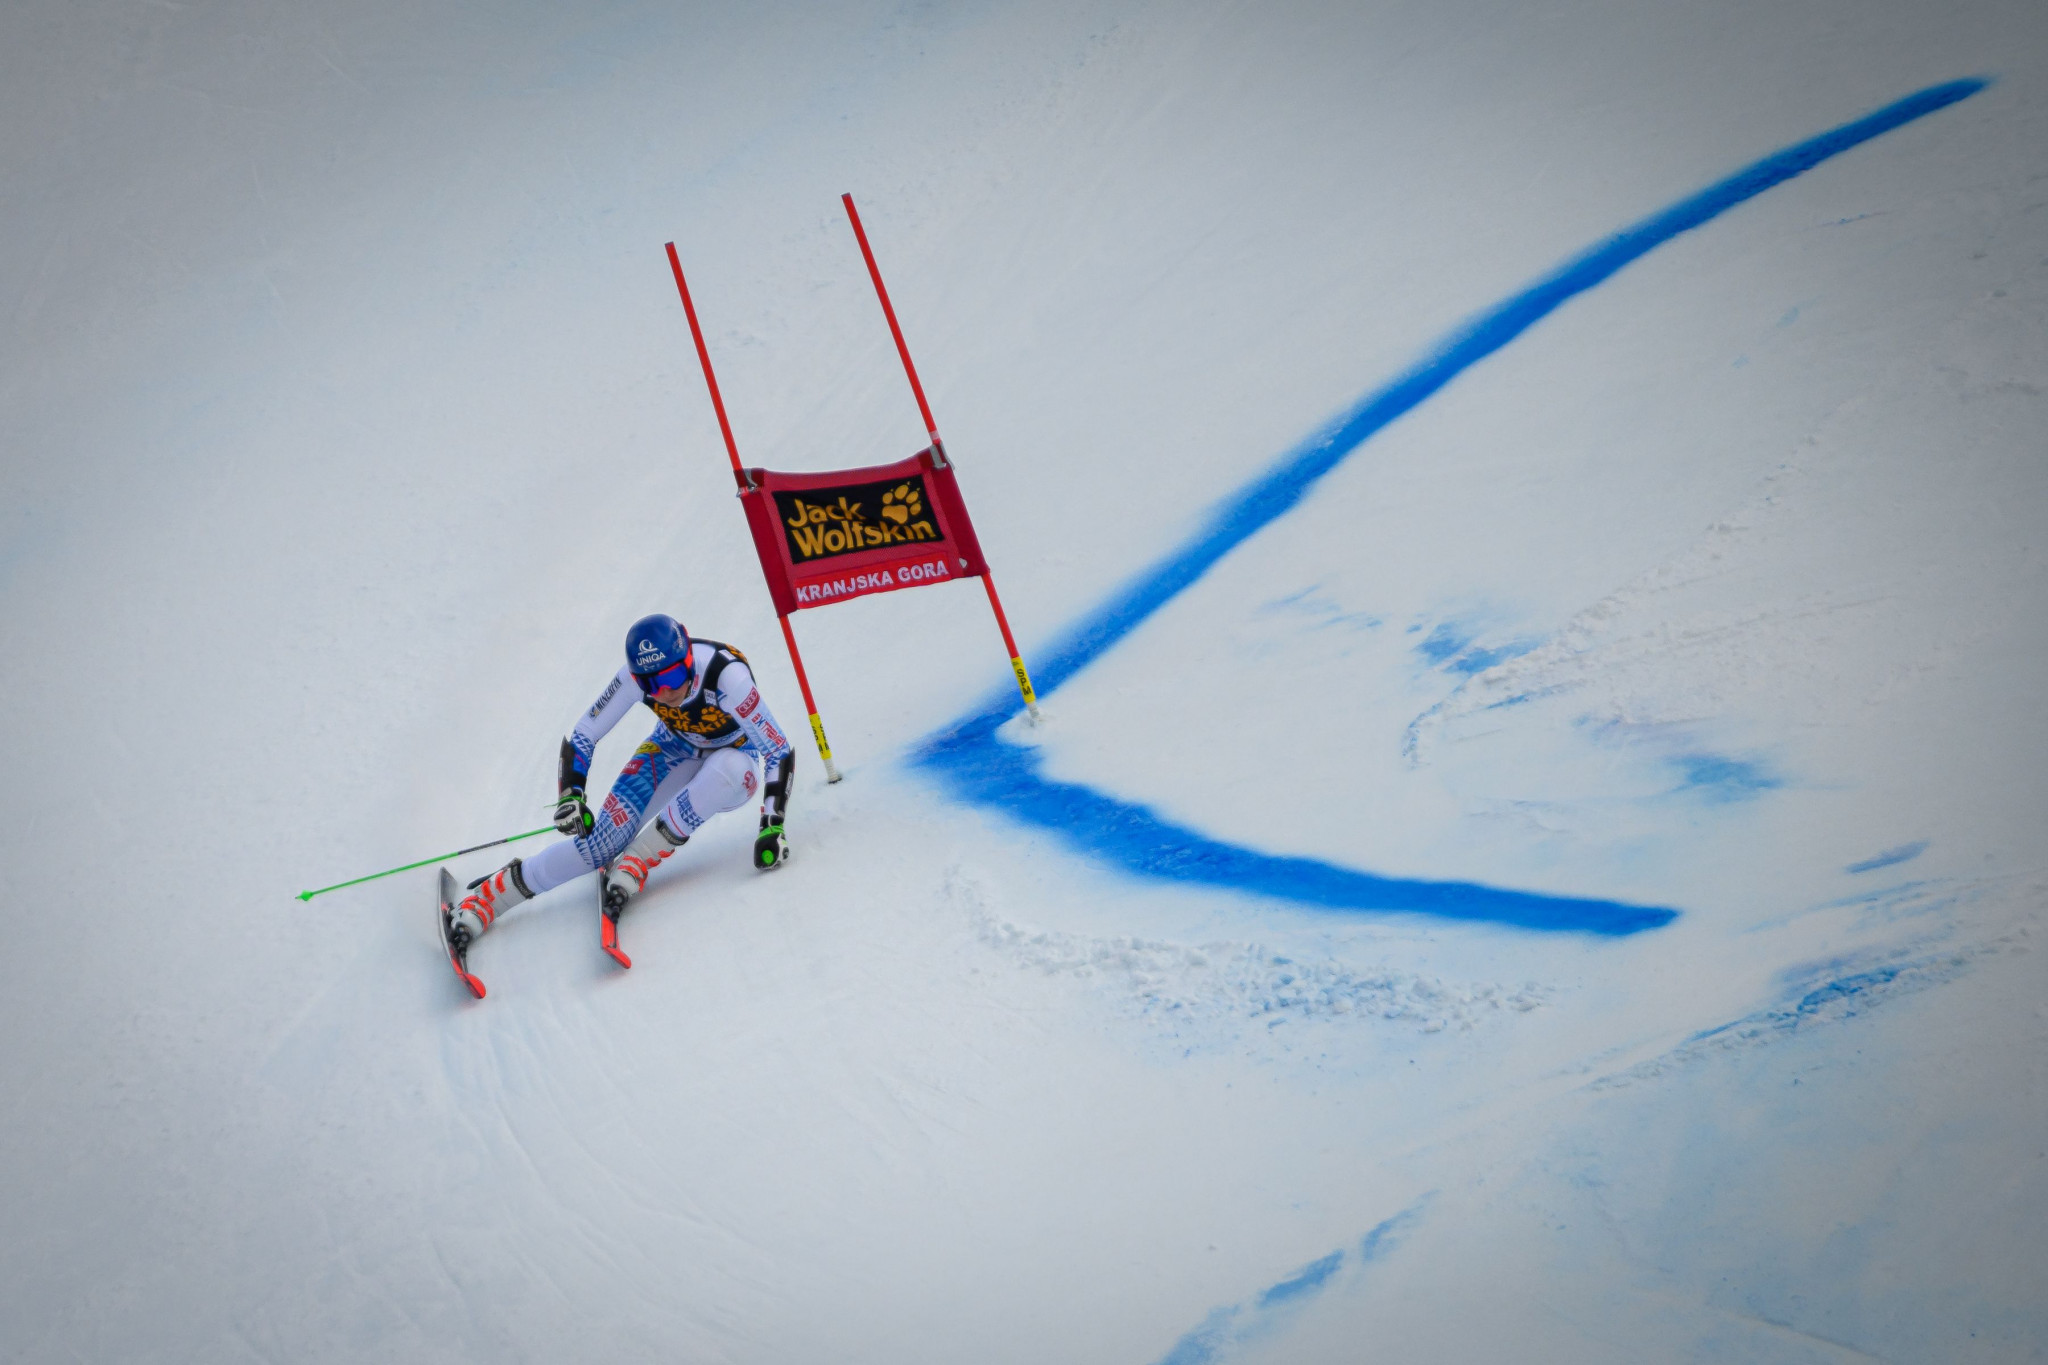 Slovakia's Petra Vlhova finished as the runner-up ©Getty Images